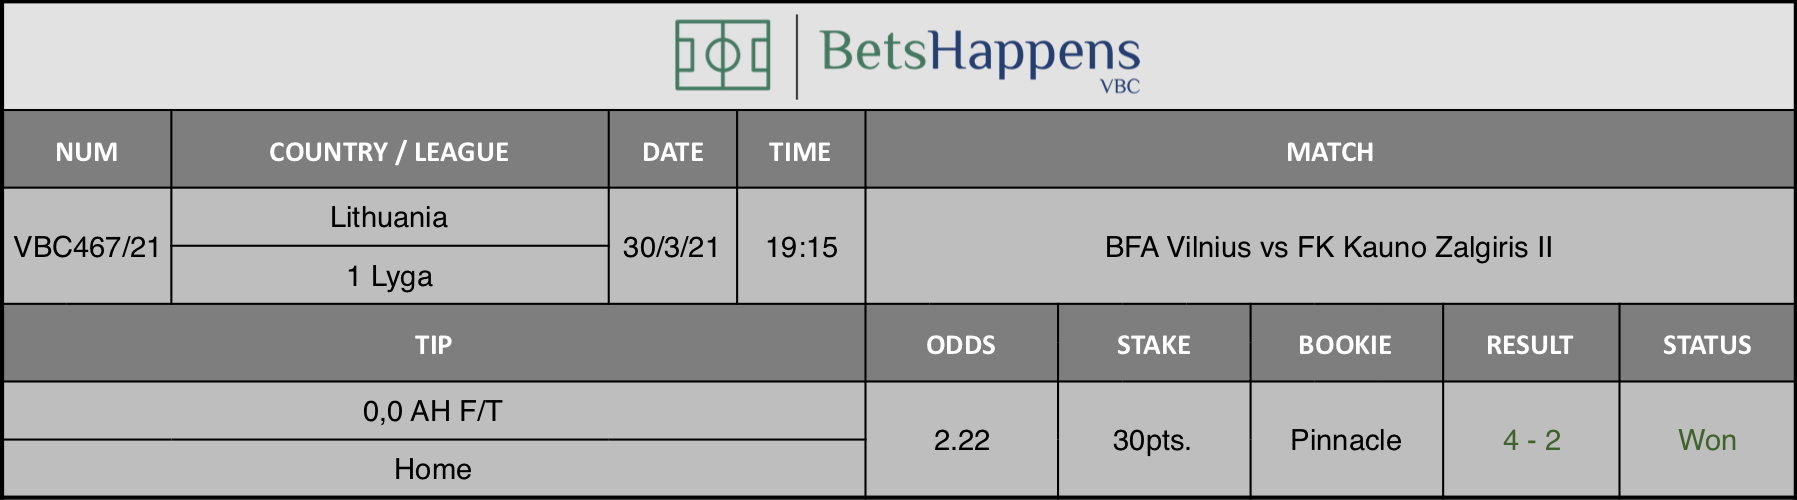 Results of our tip for the BFA Vilnius vs FK Kauno Zalgiris II match where 0,0 AH F/T  Home is recommended.